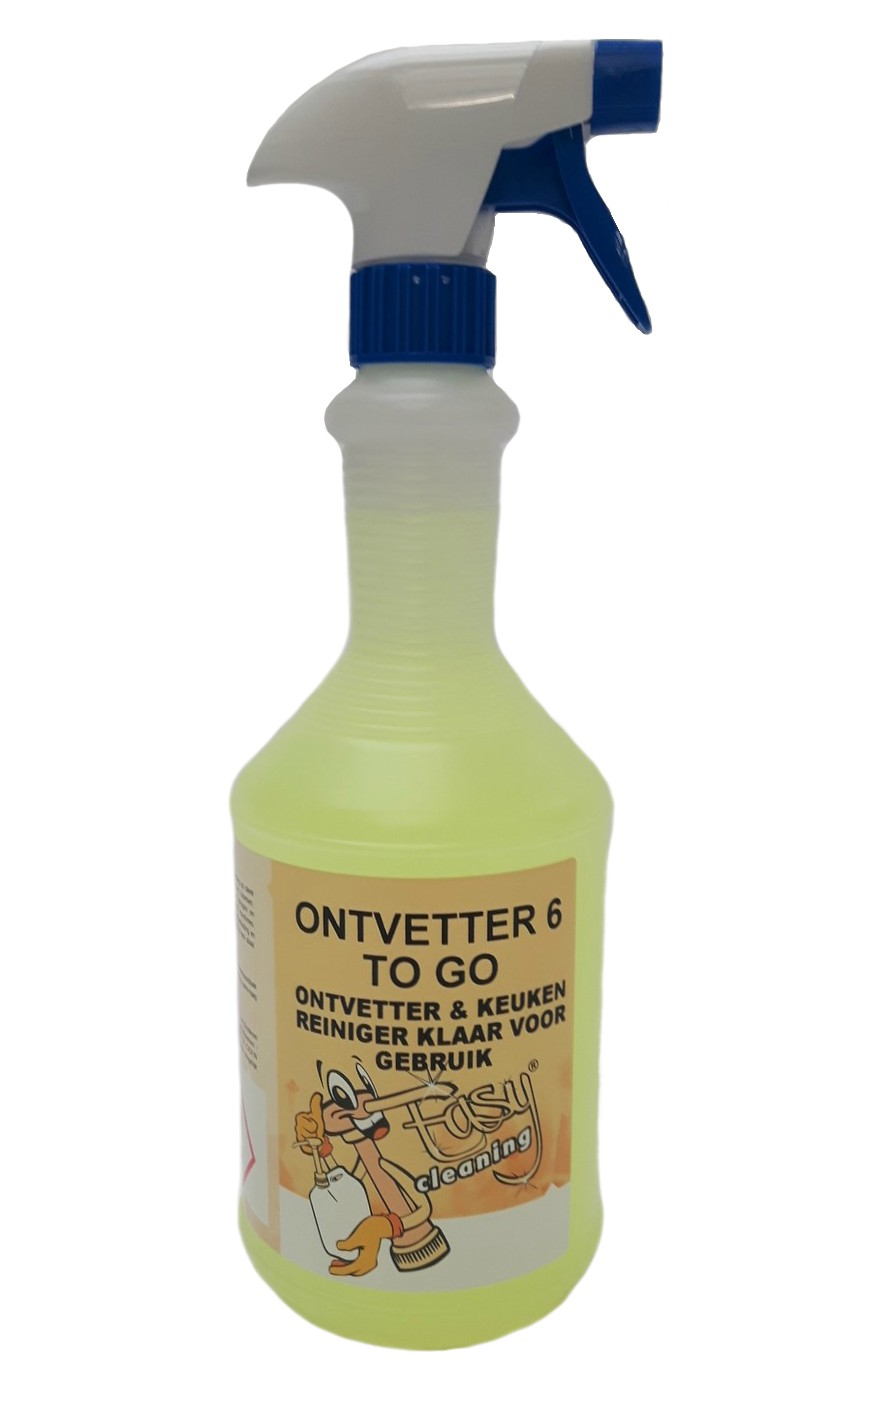 Easy Cleaning nr 6+ ontvetter/ keukenreiniger TO GO, 1 liter